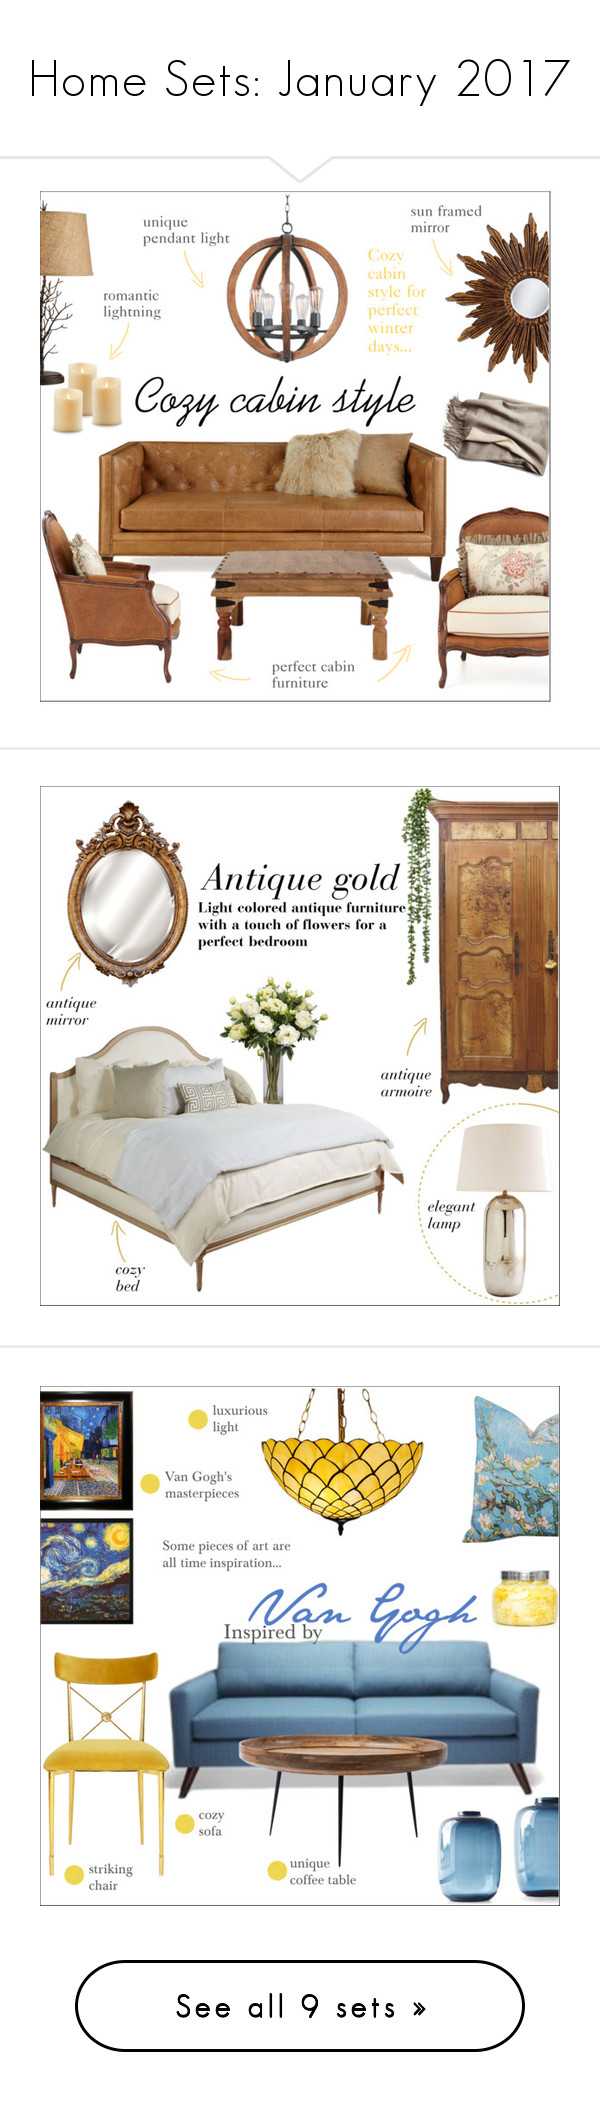 Home decor collage from january 2017 featuring currey company -  Home Sets January 2017 By Taniadeseptembre Liked On Polyvore Featuring Interior